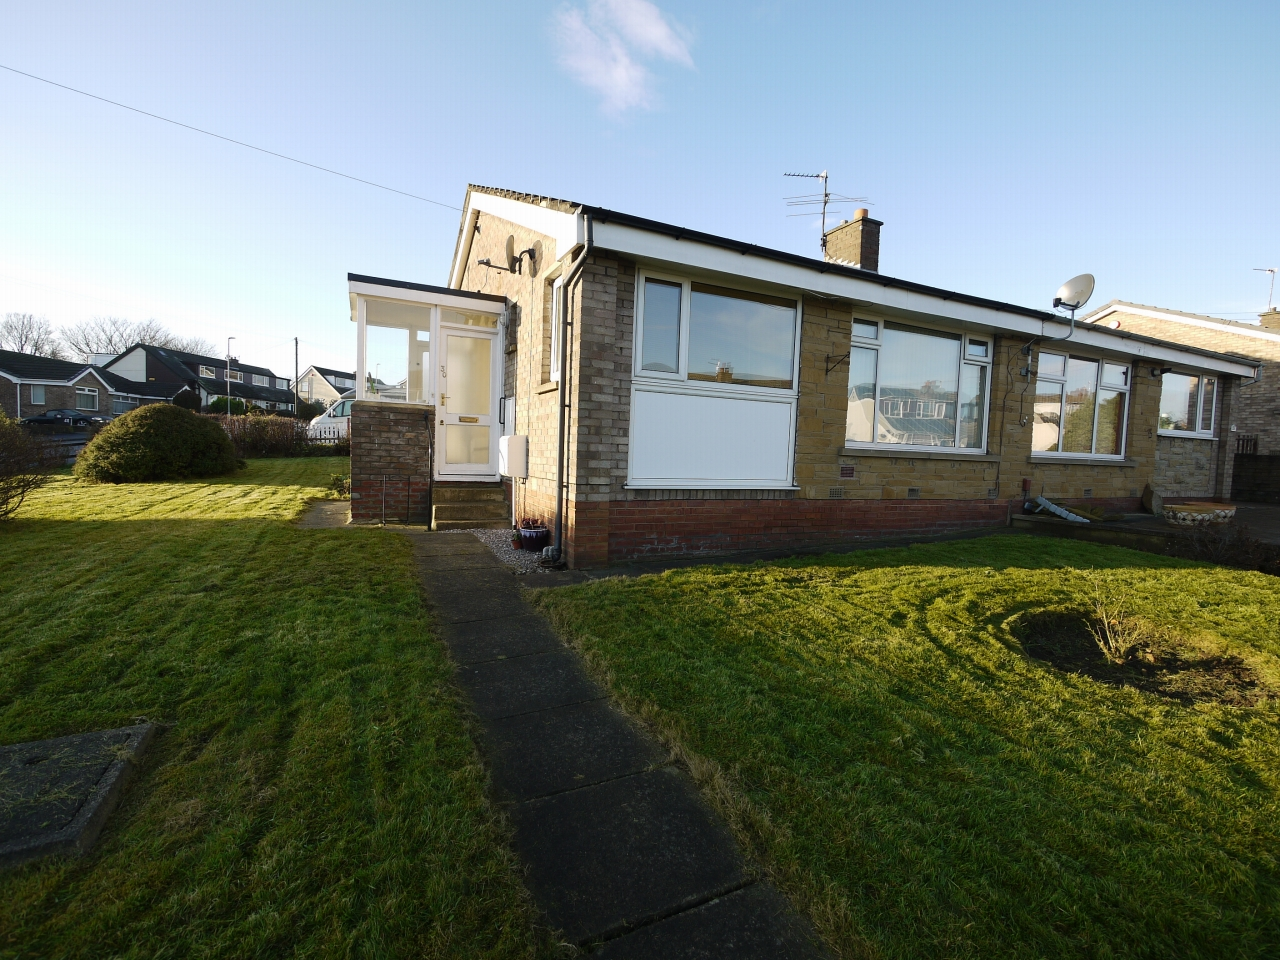 2 bedroom detached bungalow SSTC in Brighouse - Photograph 1.